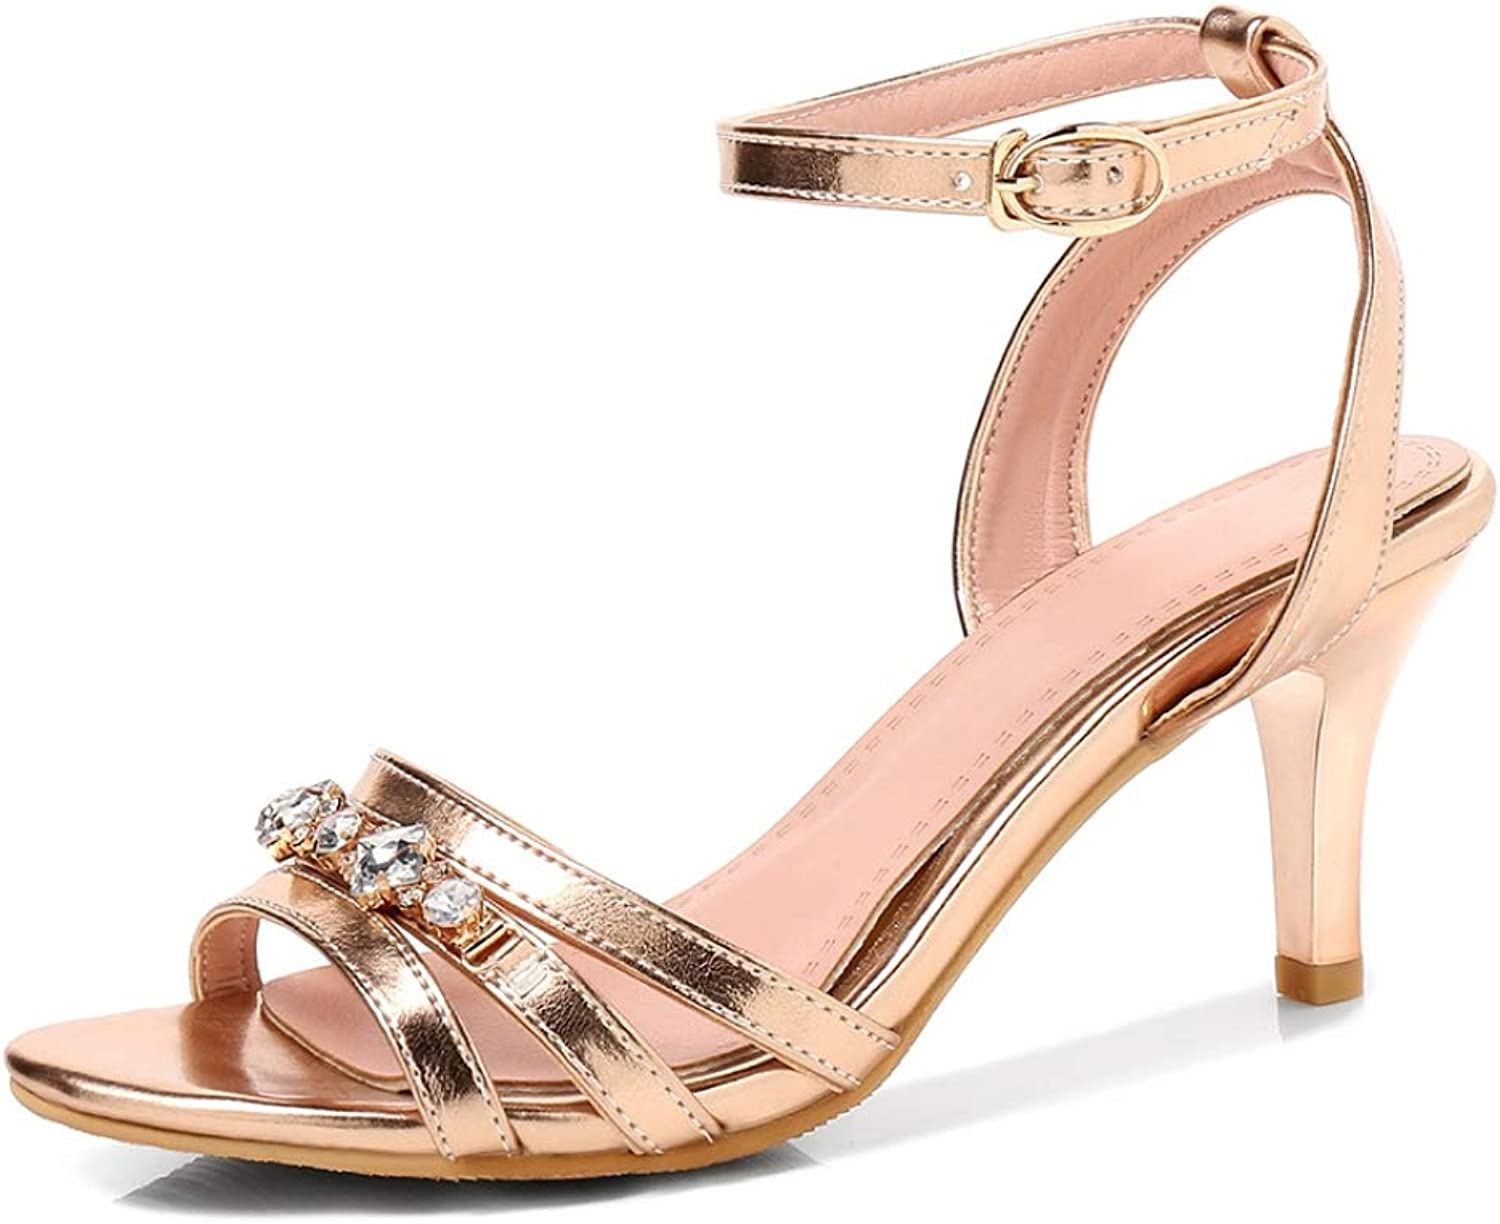 Women Thin High Heels Sandals Ankle Buckle Strap Ladies Elegant shoes Party Wedding Crystal shoes